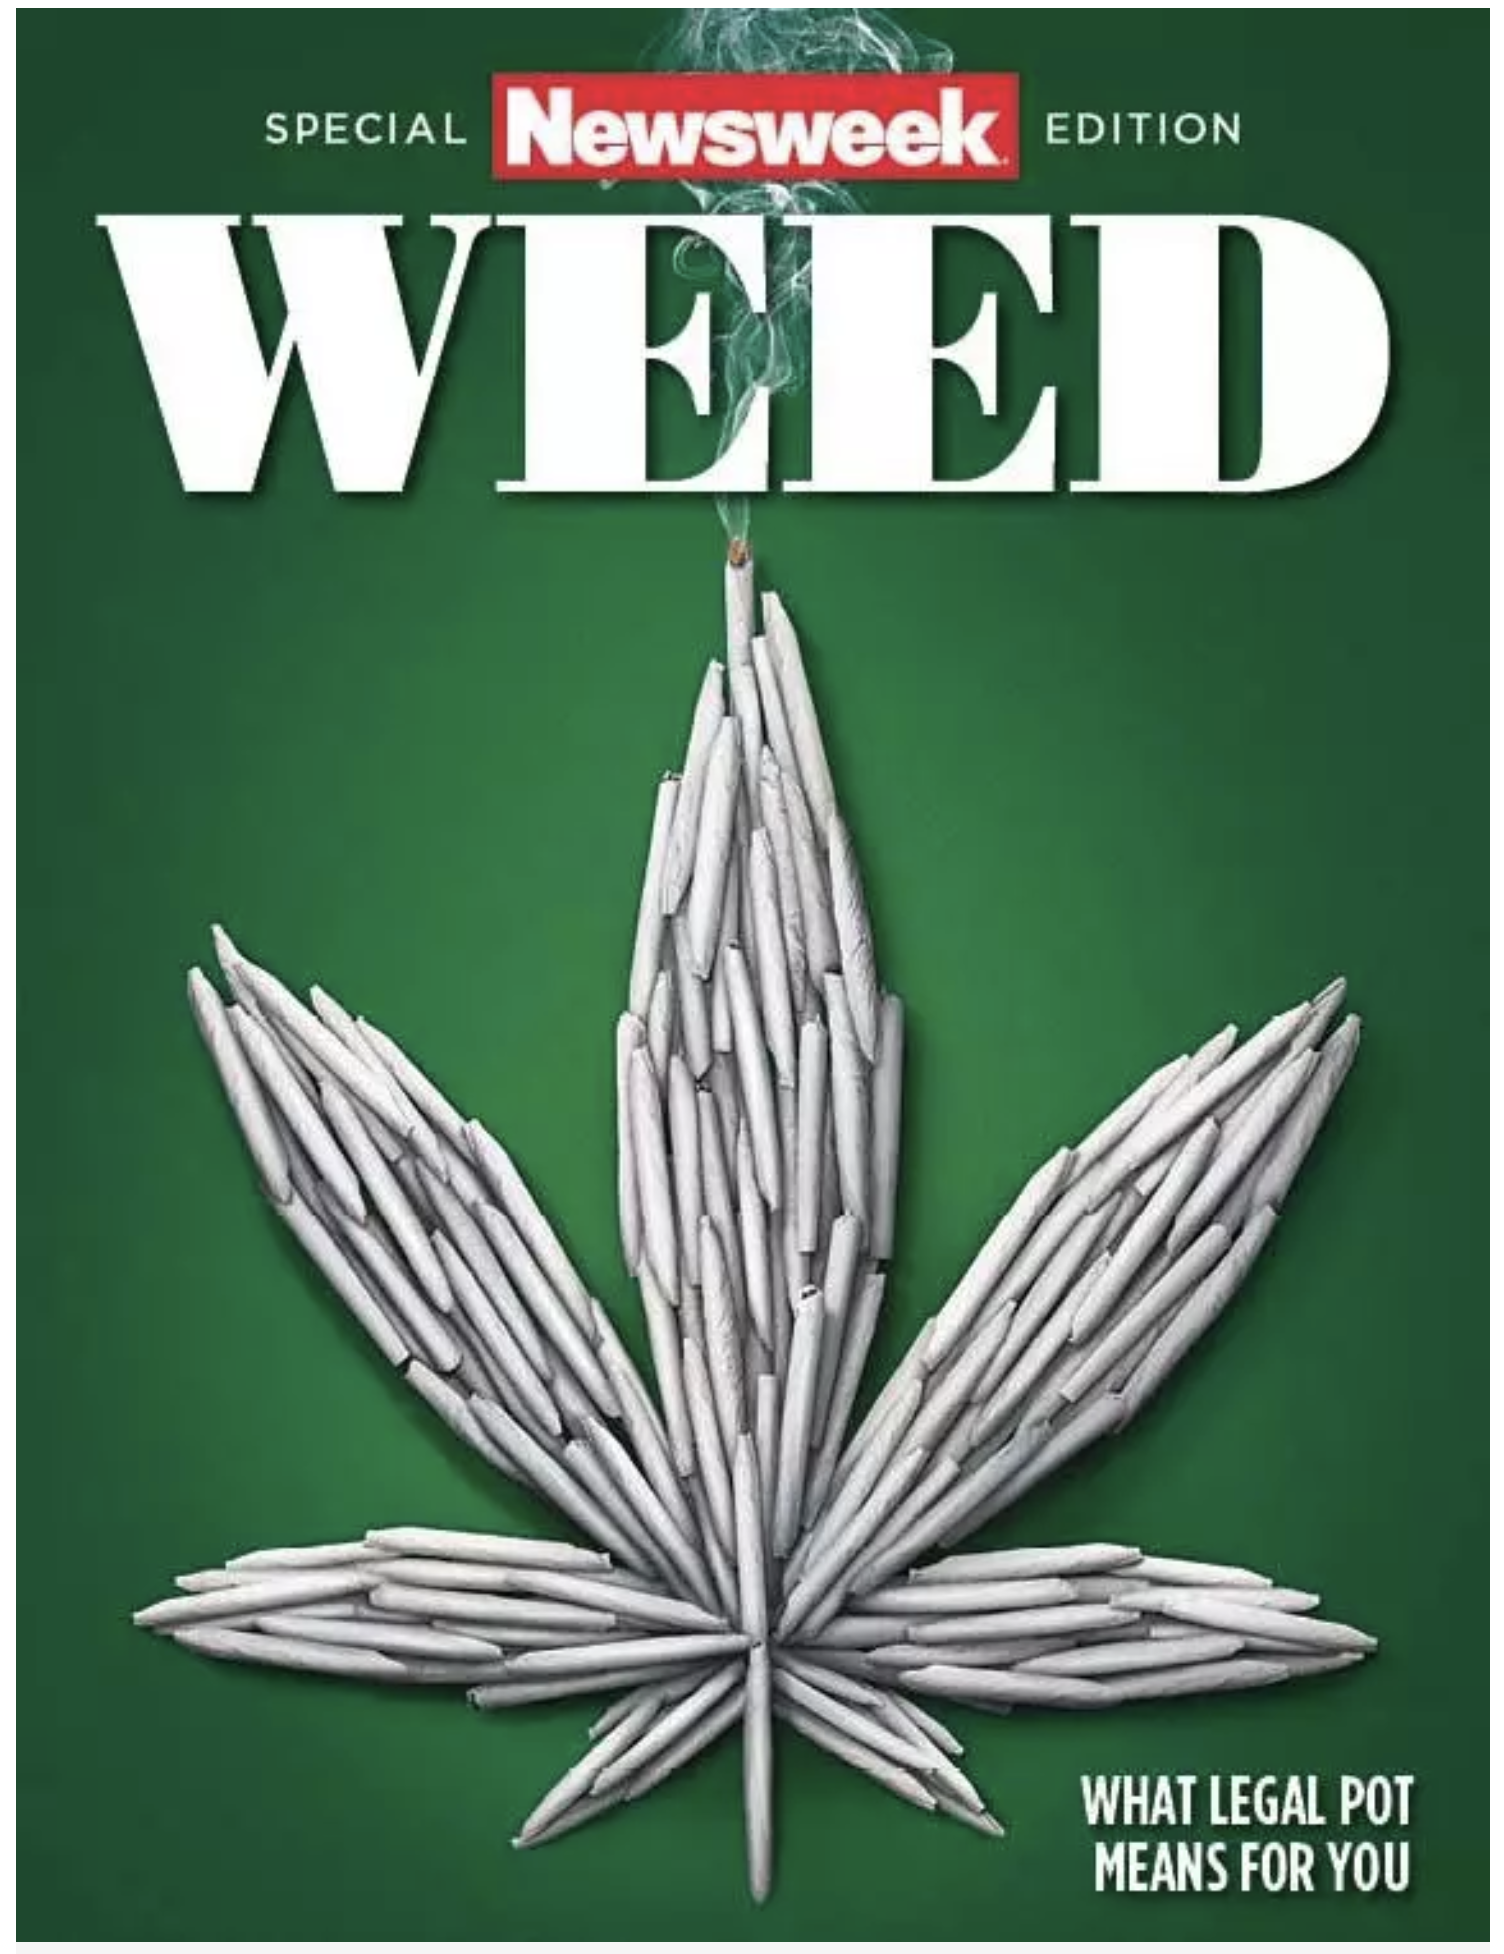 Newsweek Special Weed Edition 2018